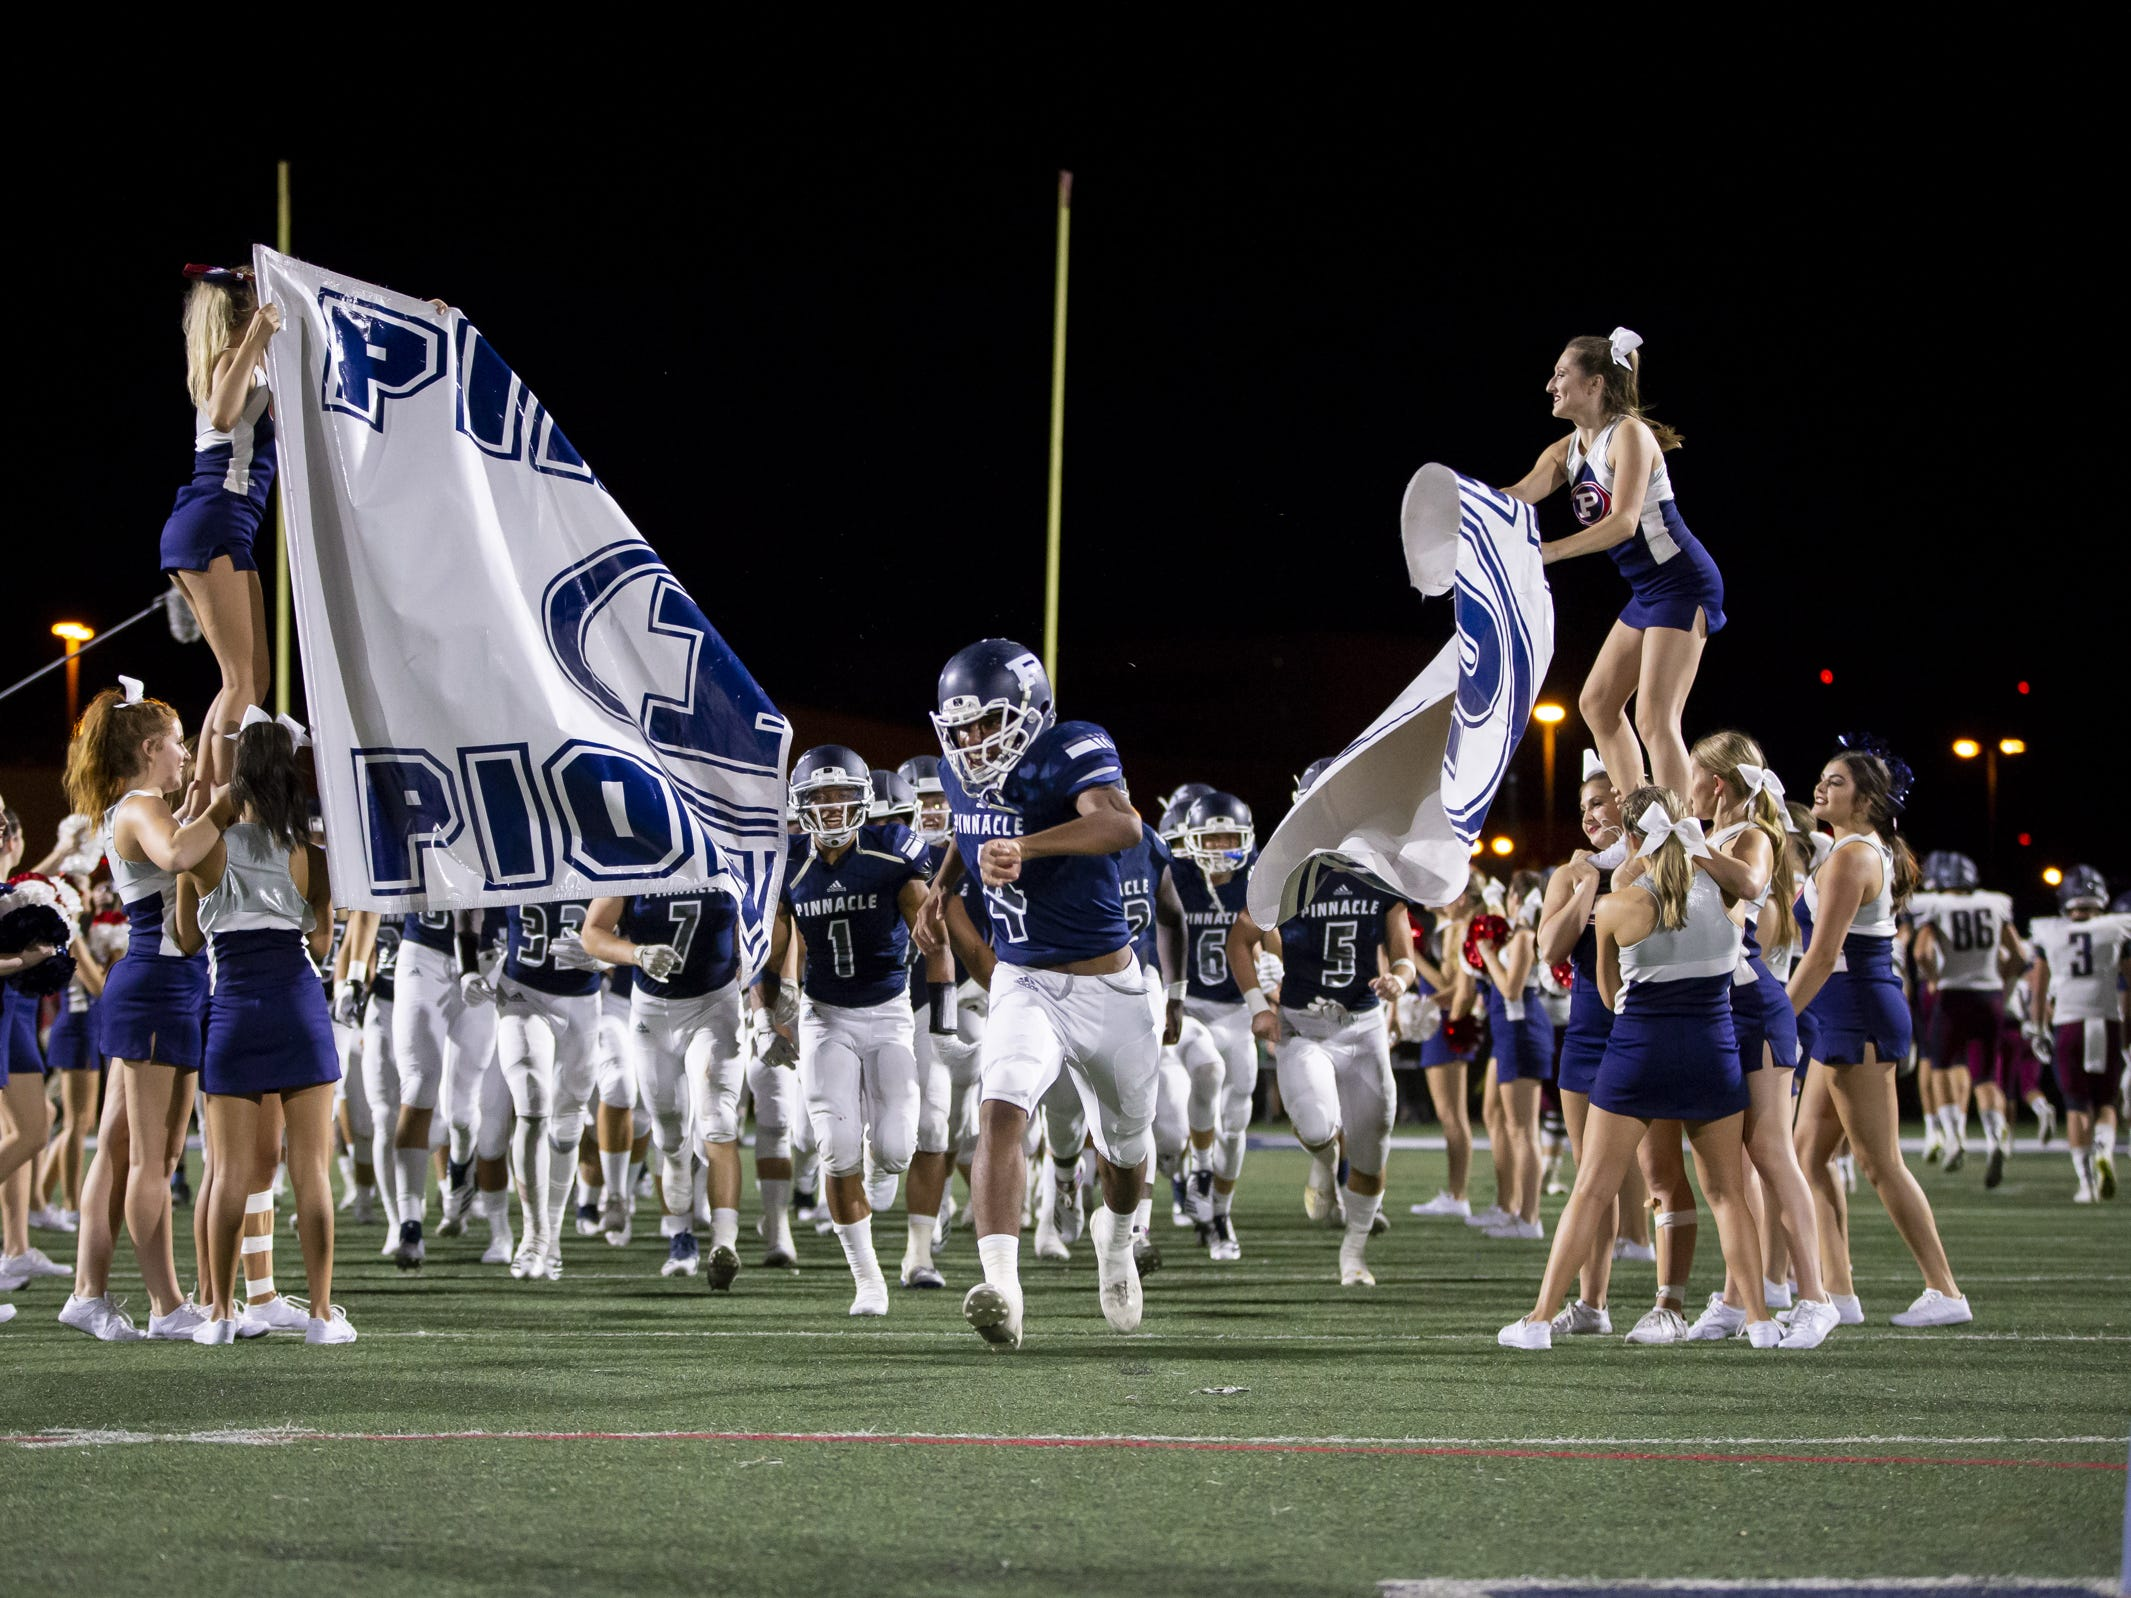 The Pinnacle Pioneers enter the field in the second half against the Perry Pumas at Pinnacle High School on Friday, August 17, 2018 in Phoenix, Arizona.